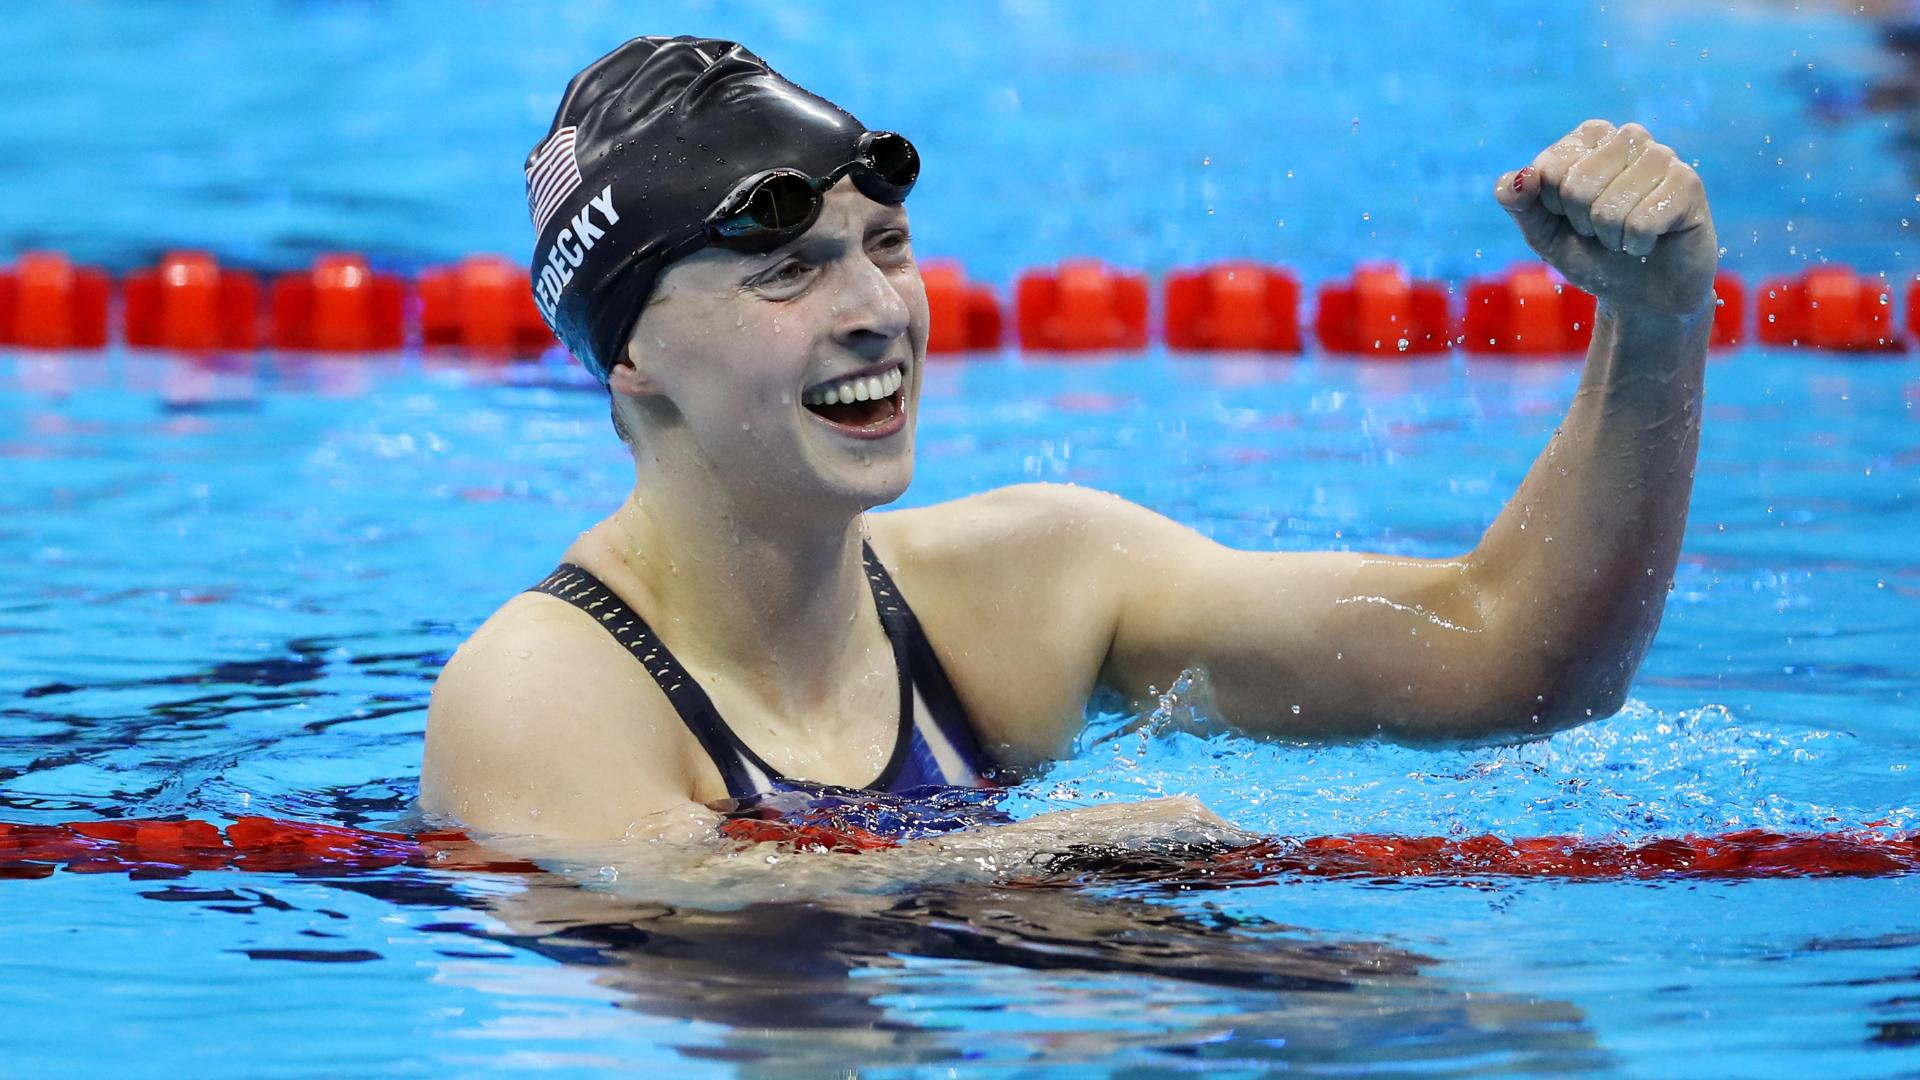 http://a.espncdn.com/media/motion/2016/0810/dm_160809_Ledecky_wins_gold_in_200meter_freestyle107/dm_160809_Ledecky_wins_gold_in_200meter_freestyle107.jpg